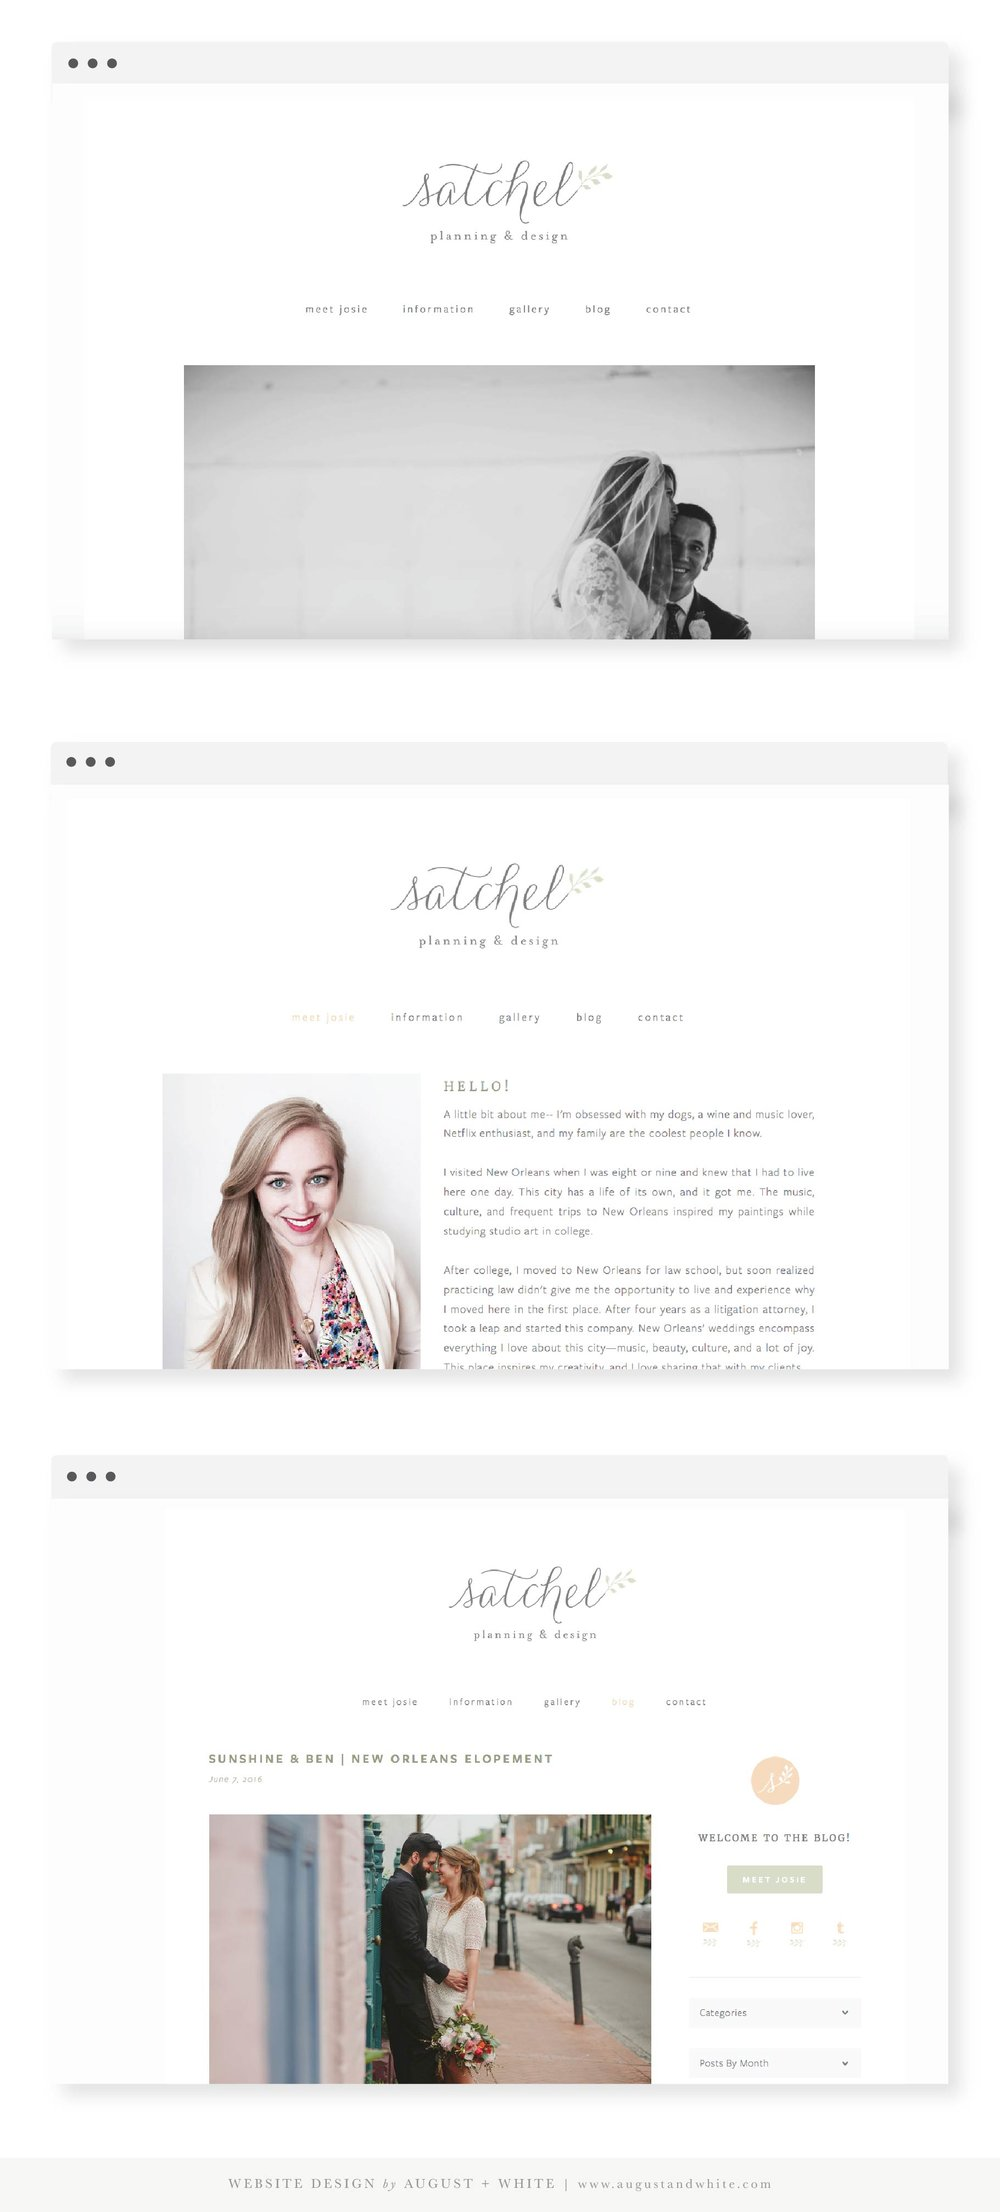 satchel website design.jpg